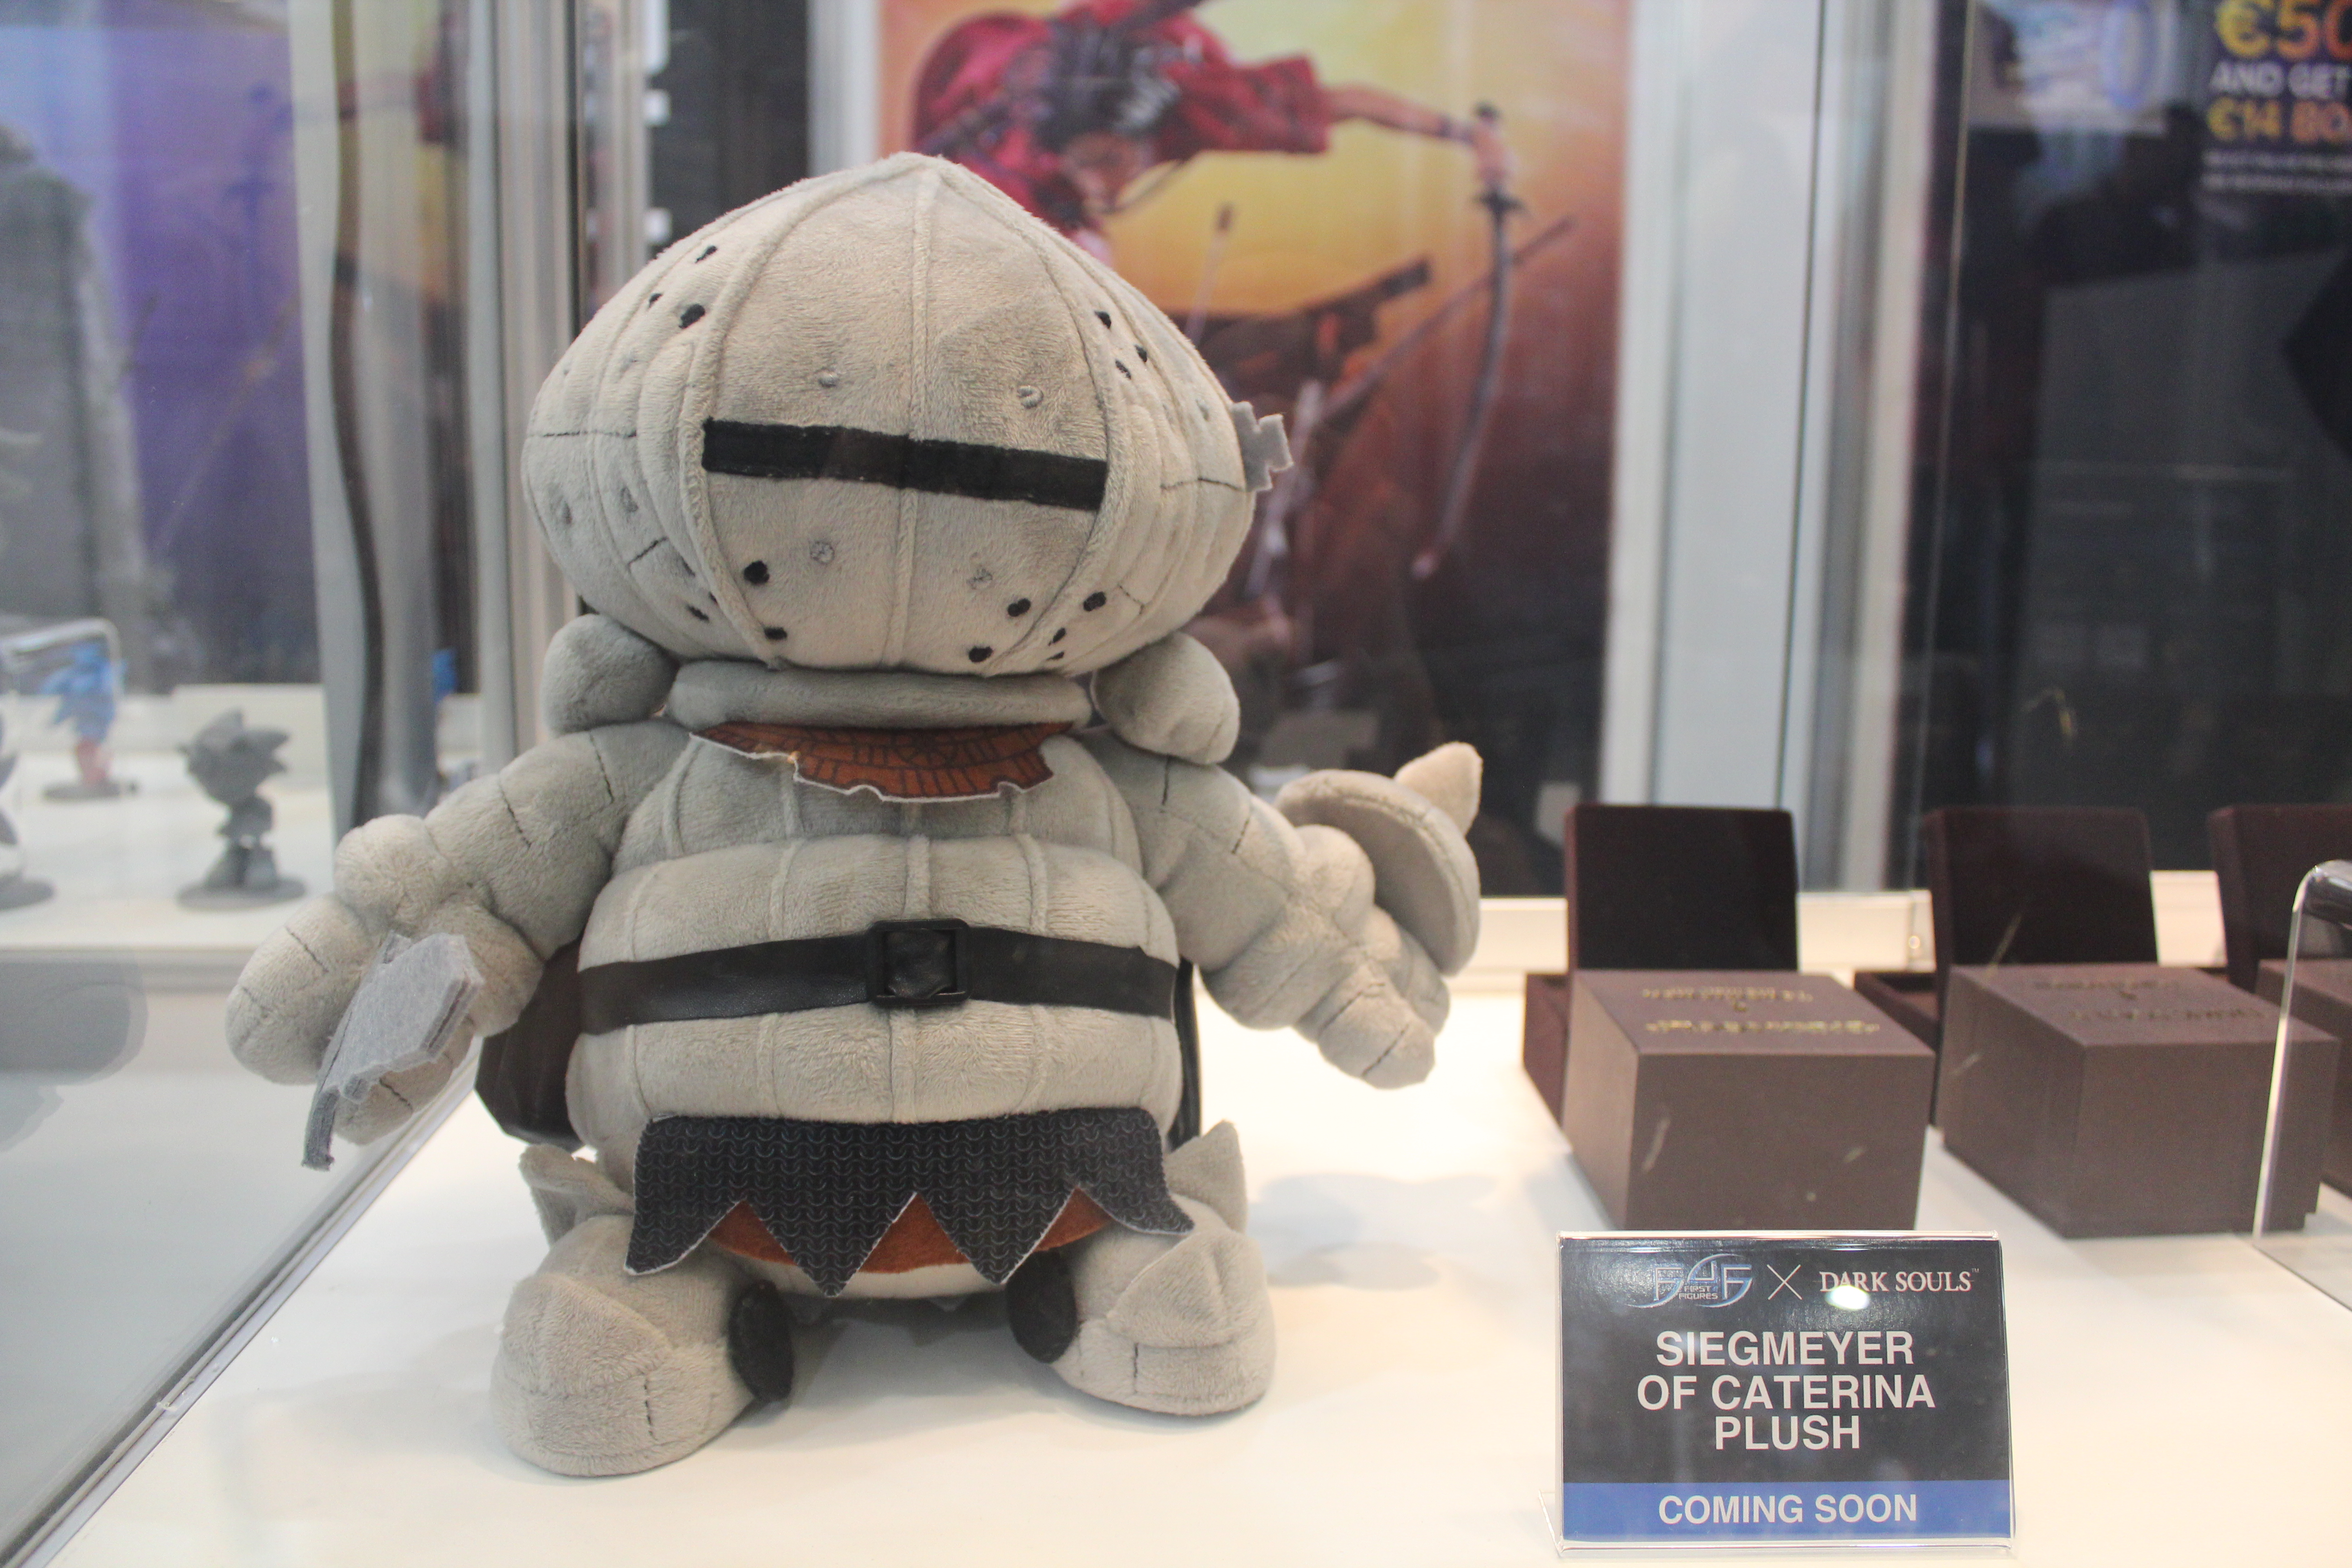 Dark Souls – Siegmeyer of Catarina Plush